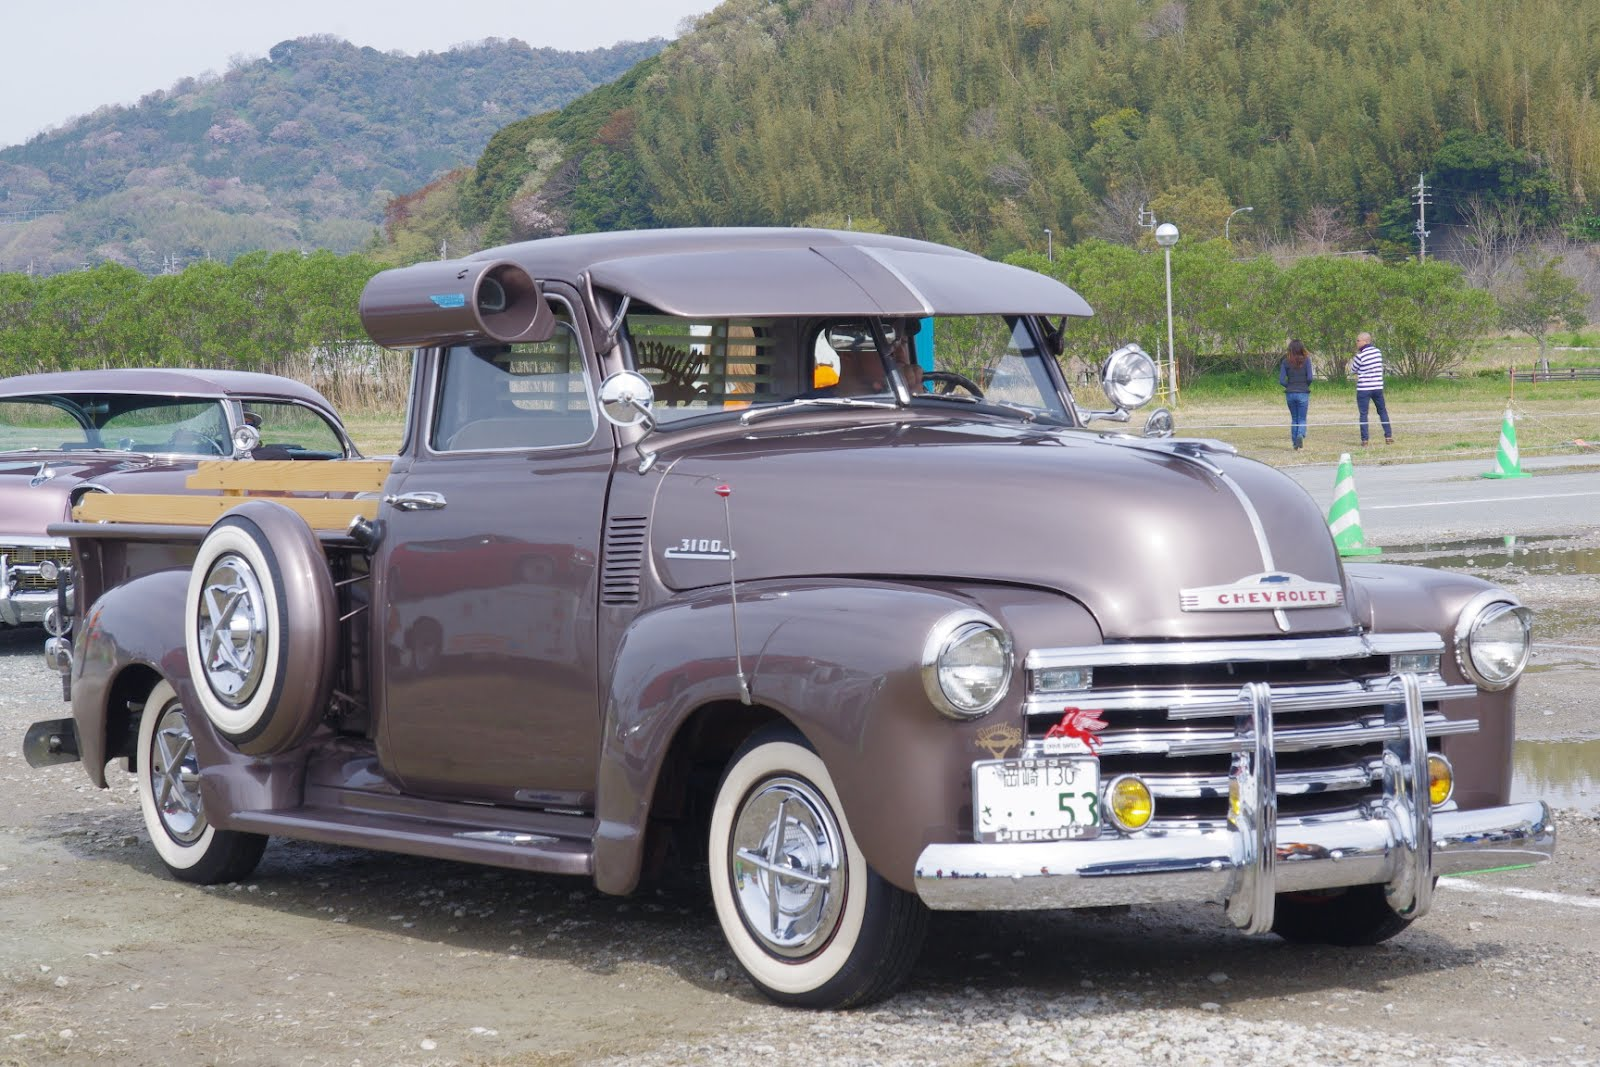 Truck 1949 chevy panel truck : 1953 Chevy Pick Up. Not my style but I like the air conditioner on ...